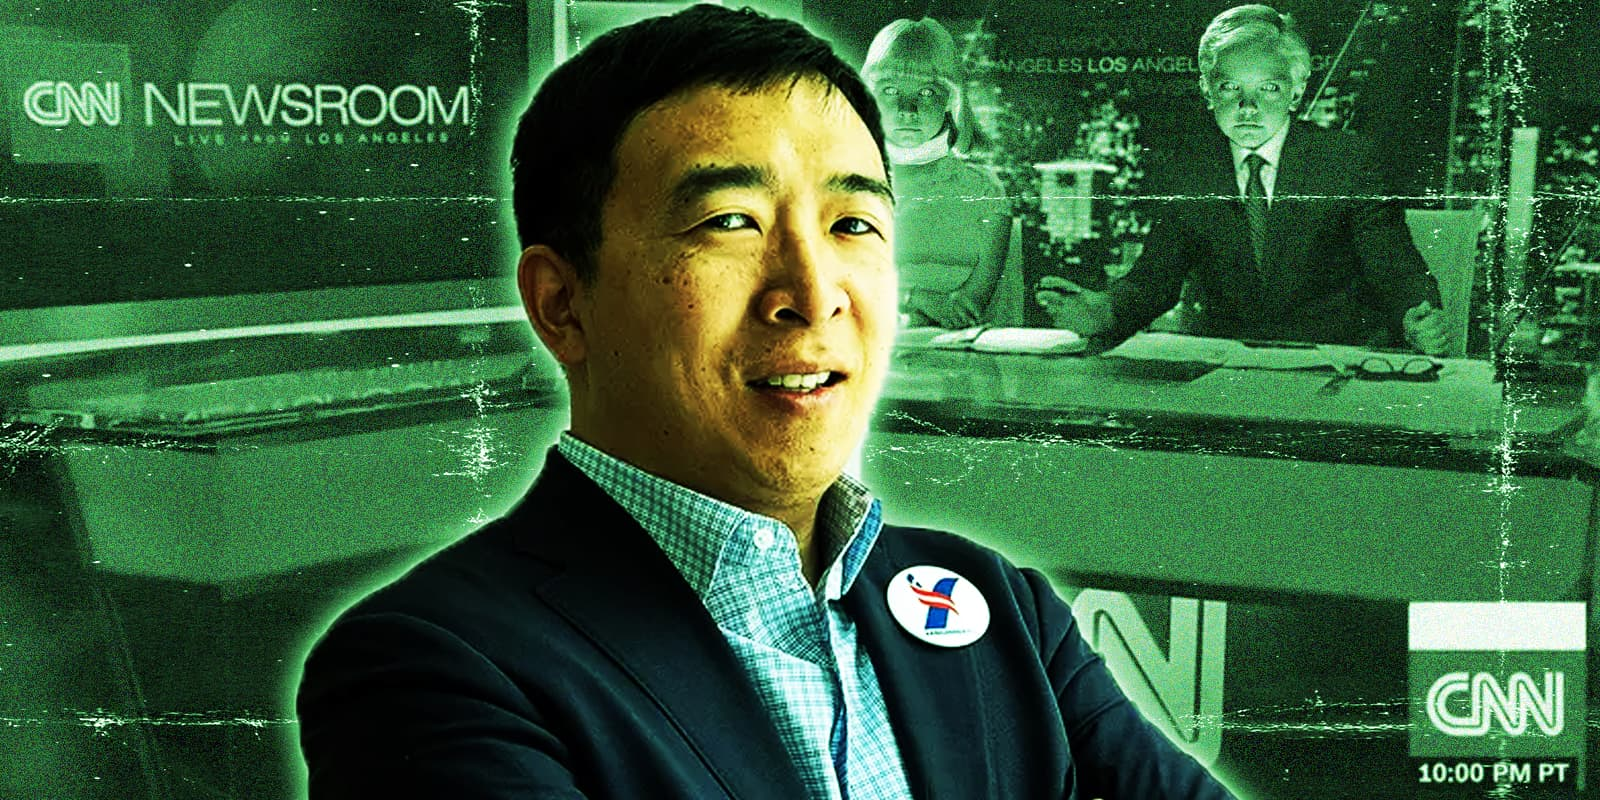 Will Andrew Yang change CNN or will it change him?